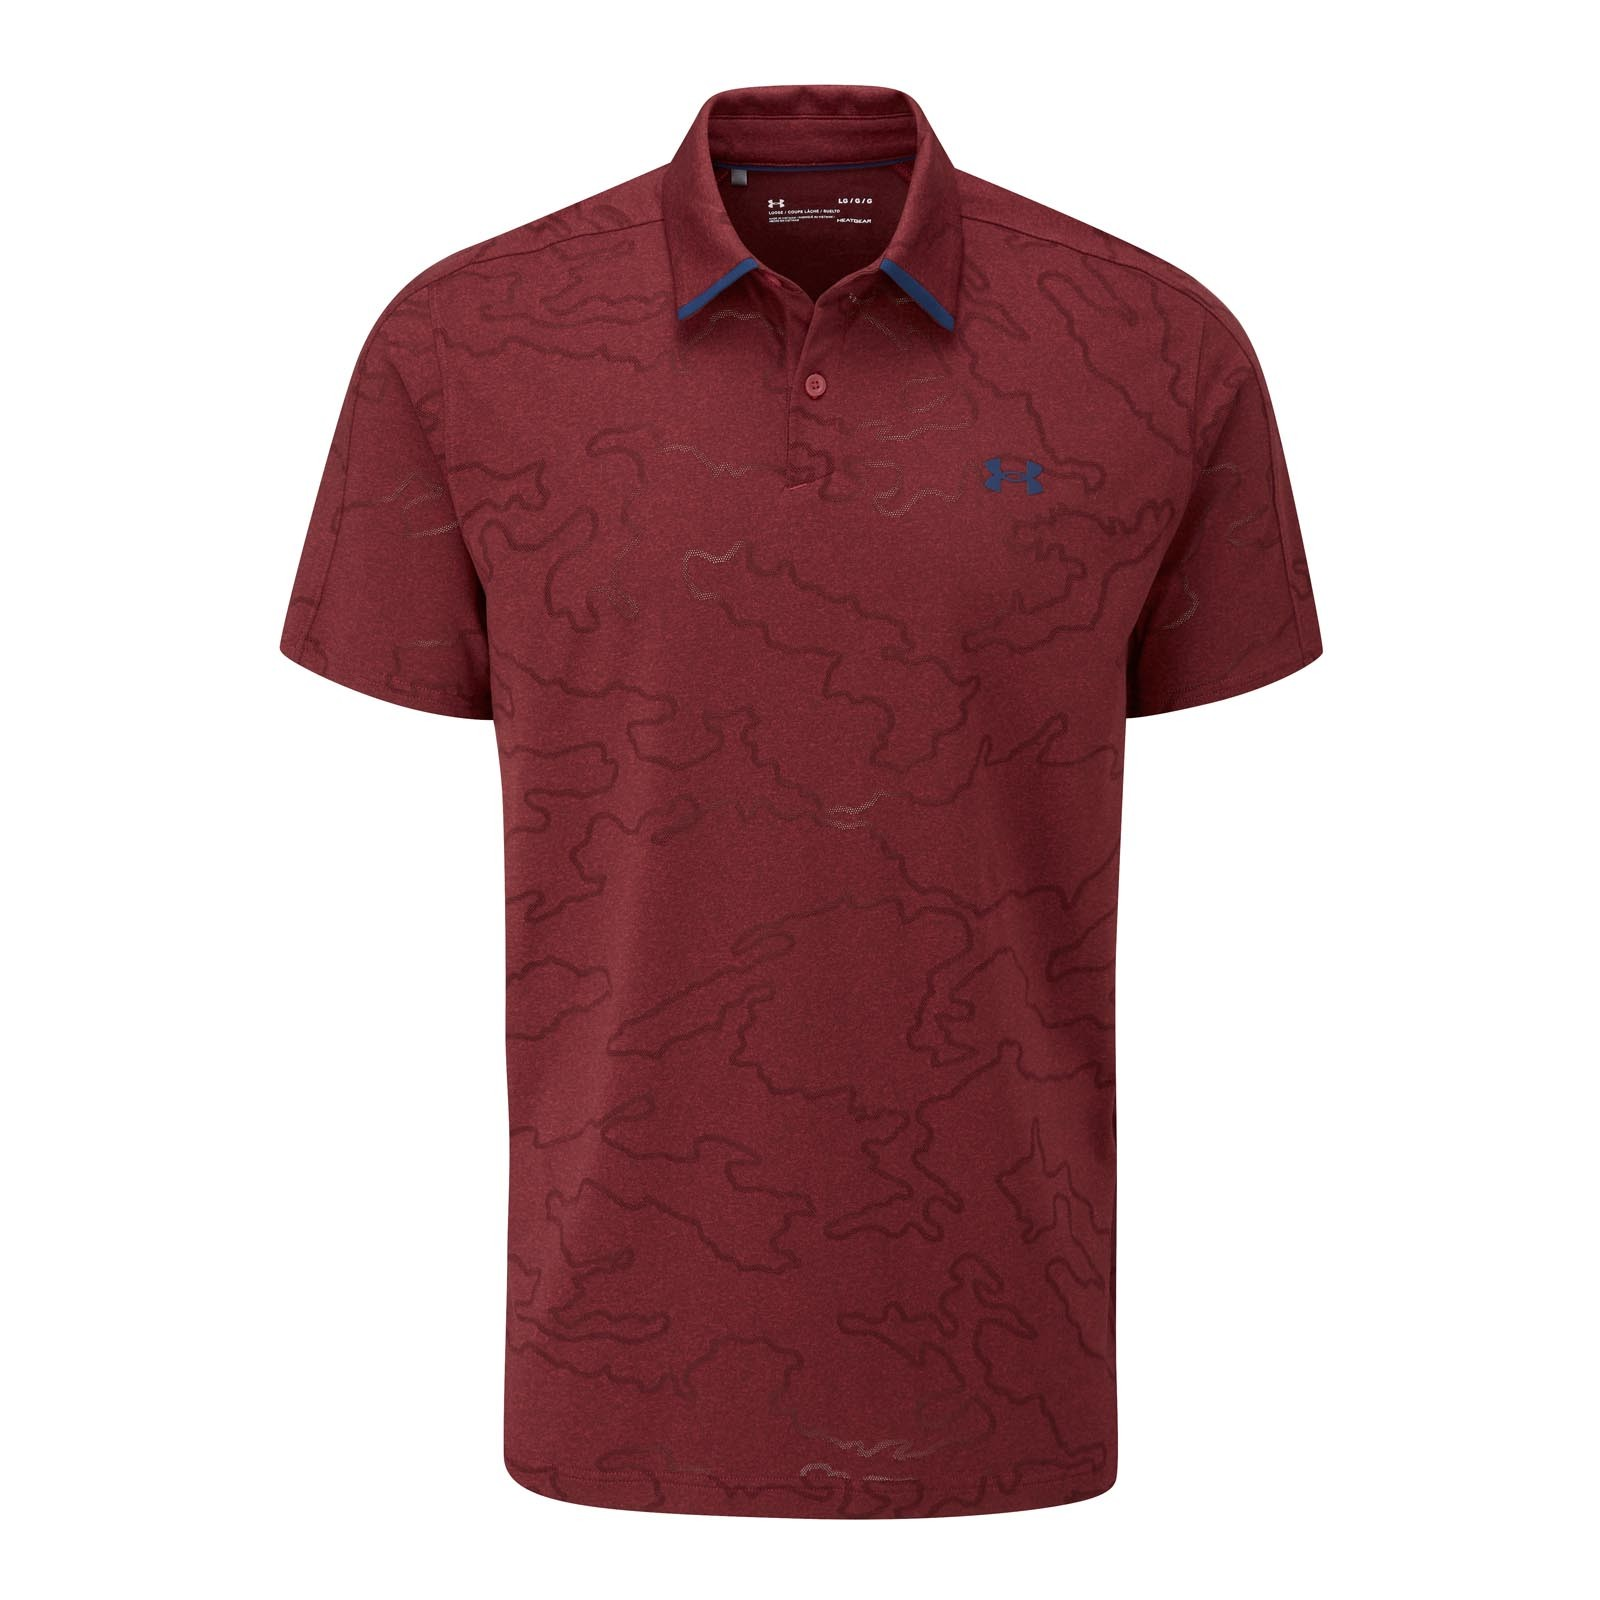 Under Armour Vanish NCG Polo